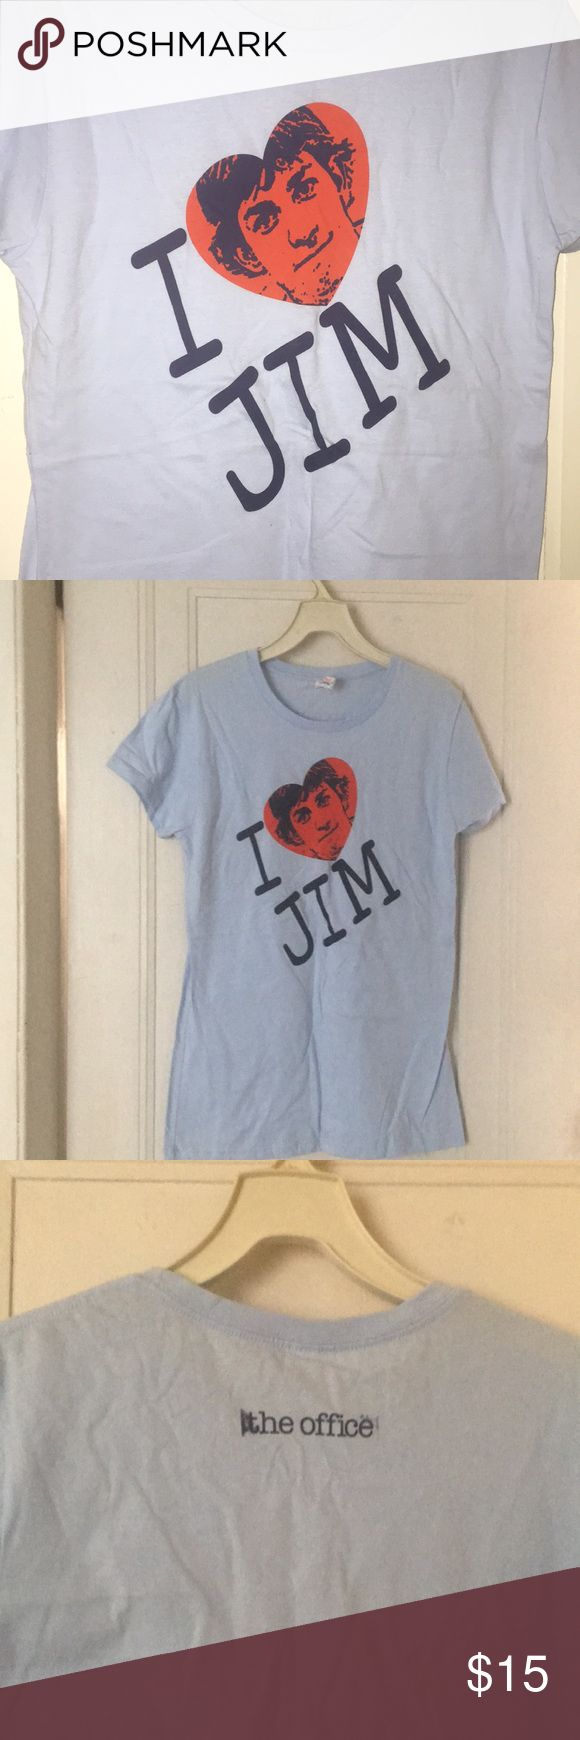 """""""I Love Jim' The Office tee Ladies tee in baby blue color with """"I Love Jim"""" design from The Office tv show. Bought at NBC Store in NYC at 30 Rock! NWOT never worn. Tops Tees - Short Sleeve"""